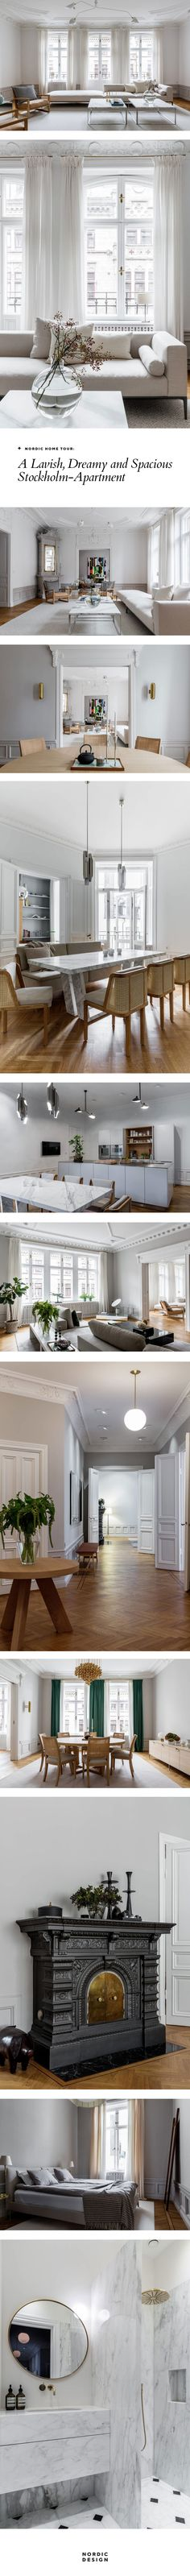 Nordic Home Tour: A lavish, dreamy and spacious Stockholm-apartment #nordicdesign #interiordesign #homestyling #luxury #stockholm #scandinaviandesign #scandinavianinterior #scandinavianhome #hometour